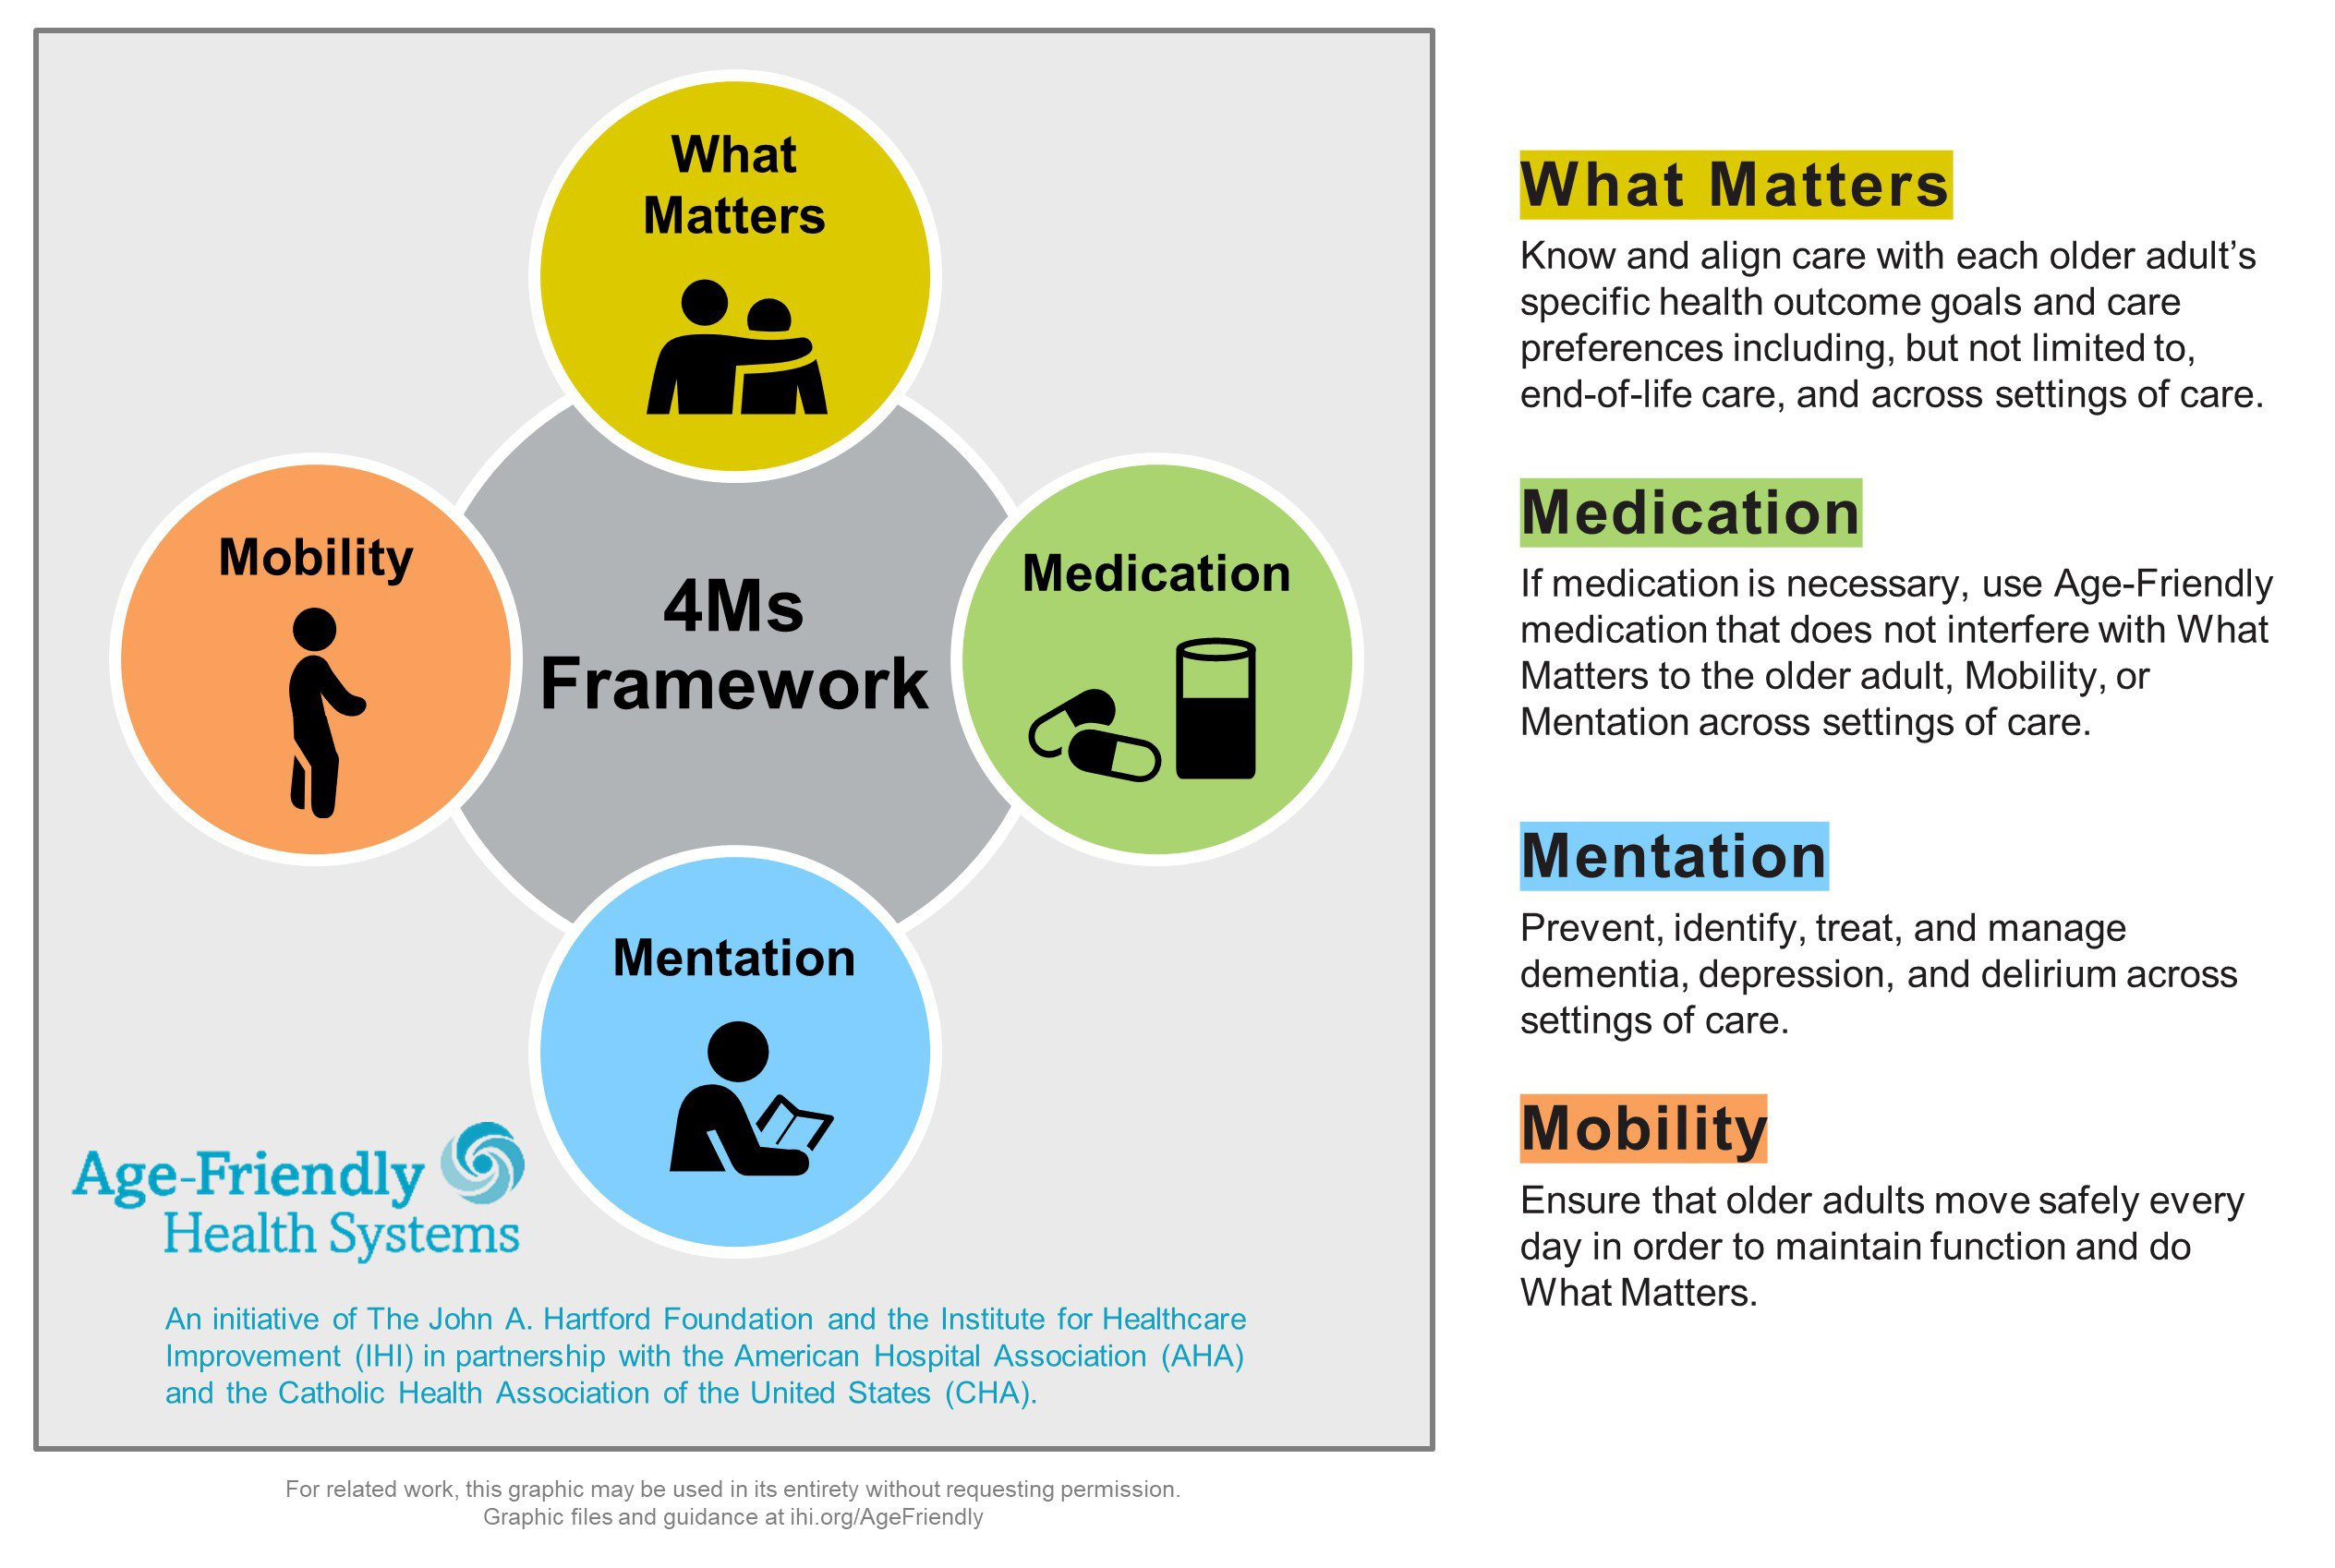 The Age-Friendly Health Systems 4Ms Framework